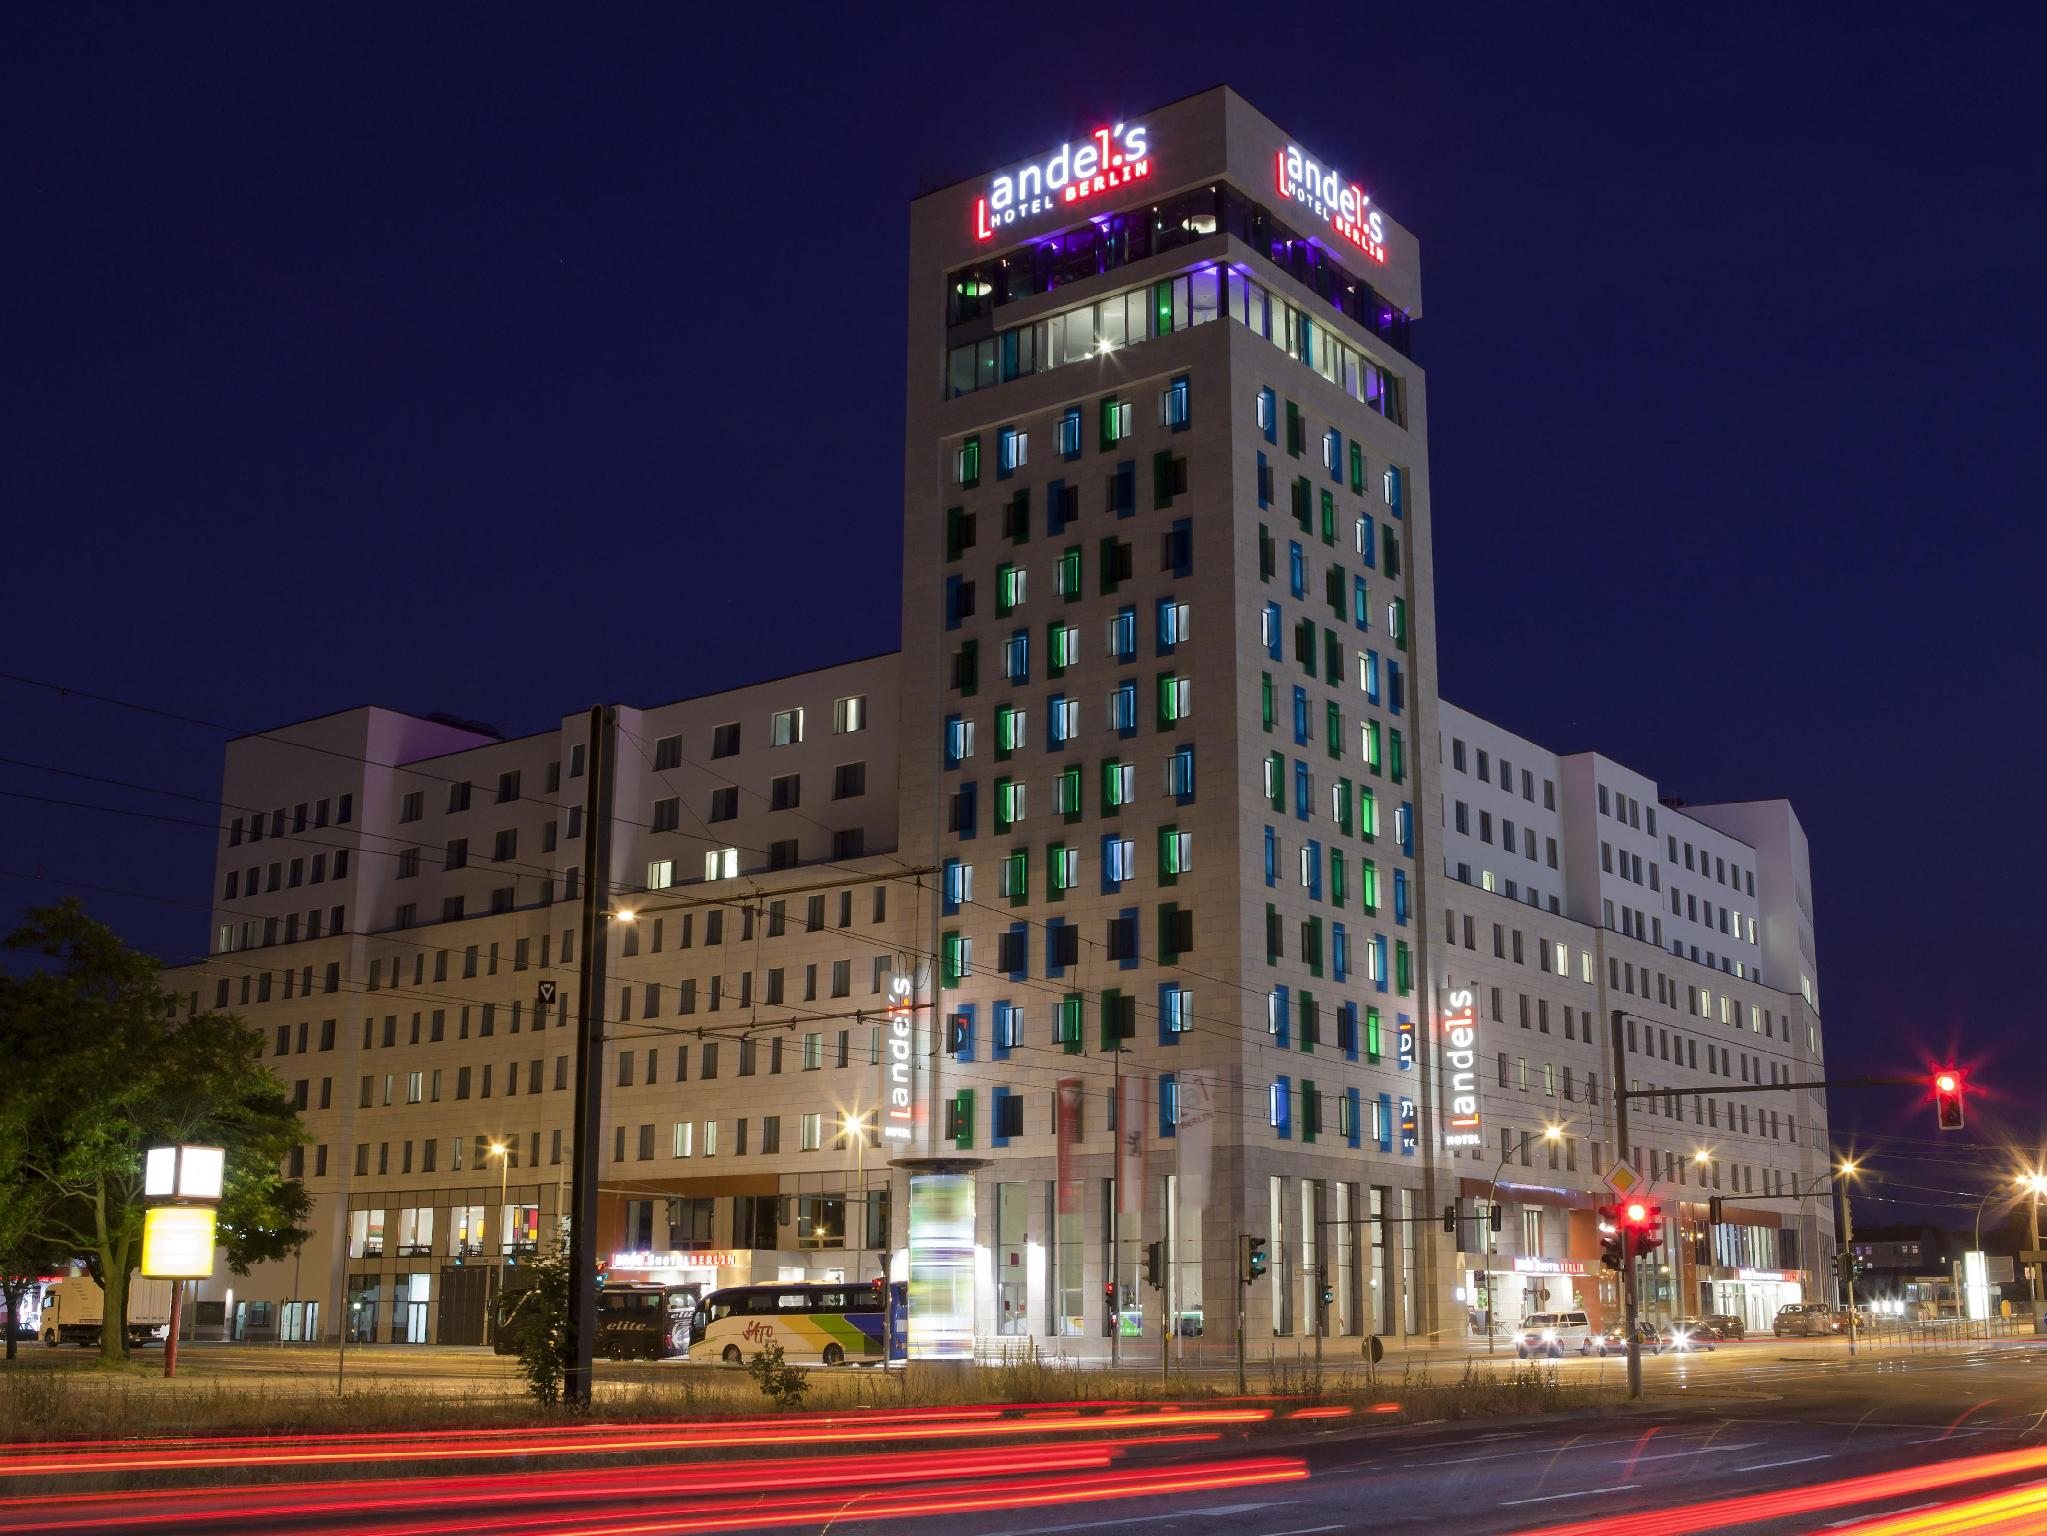 andel's Hotel Berlin, managed by Vienna International Hotels and Resorts برلين - منظر